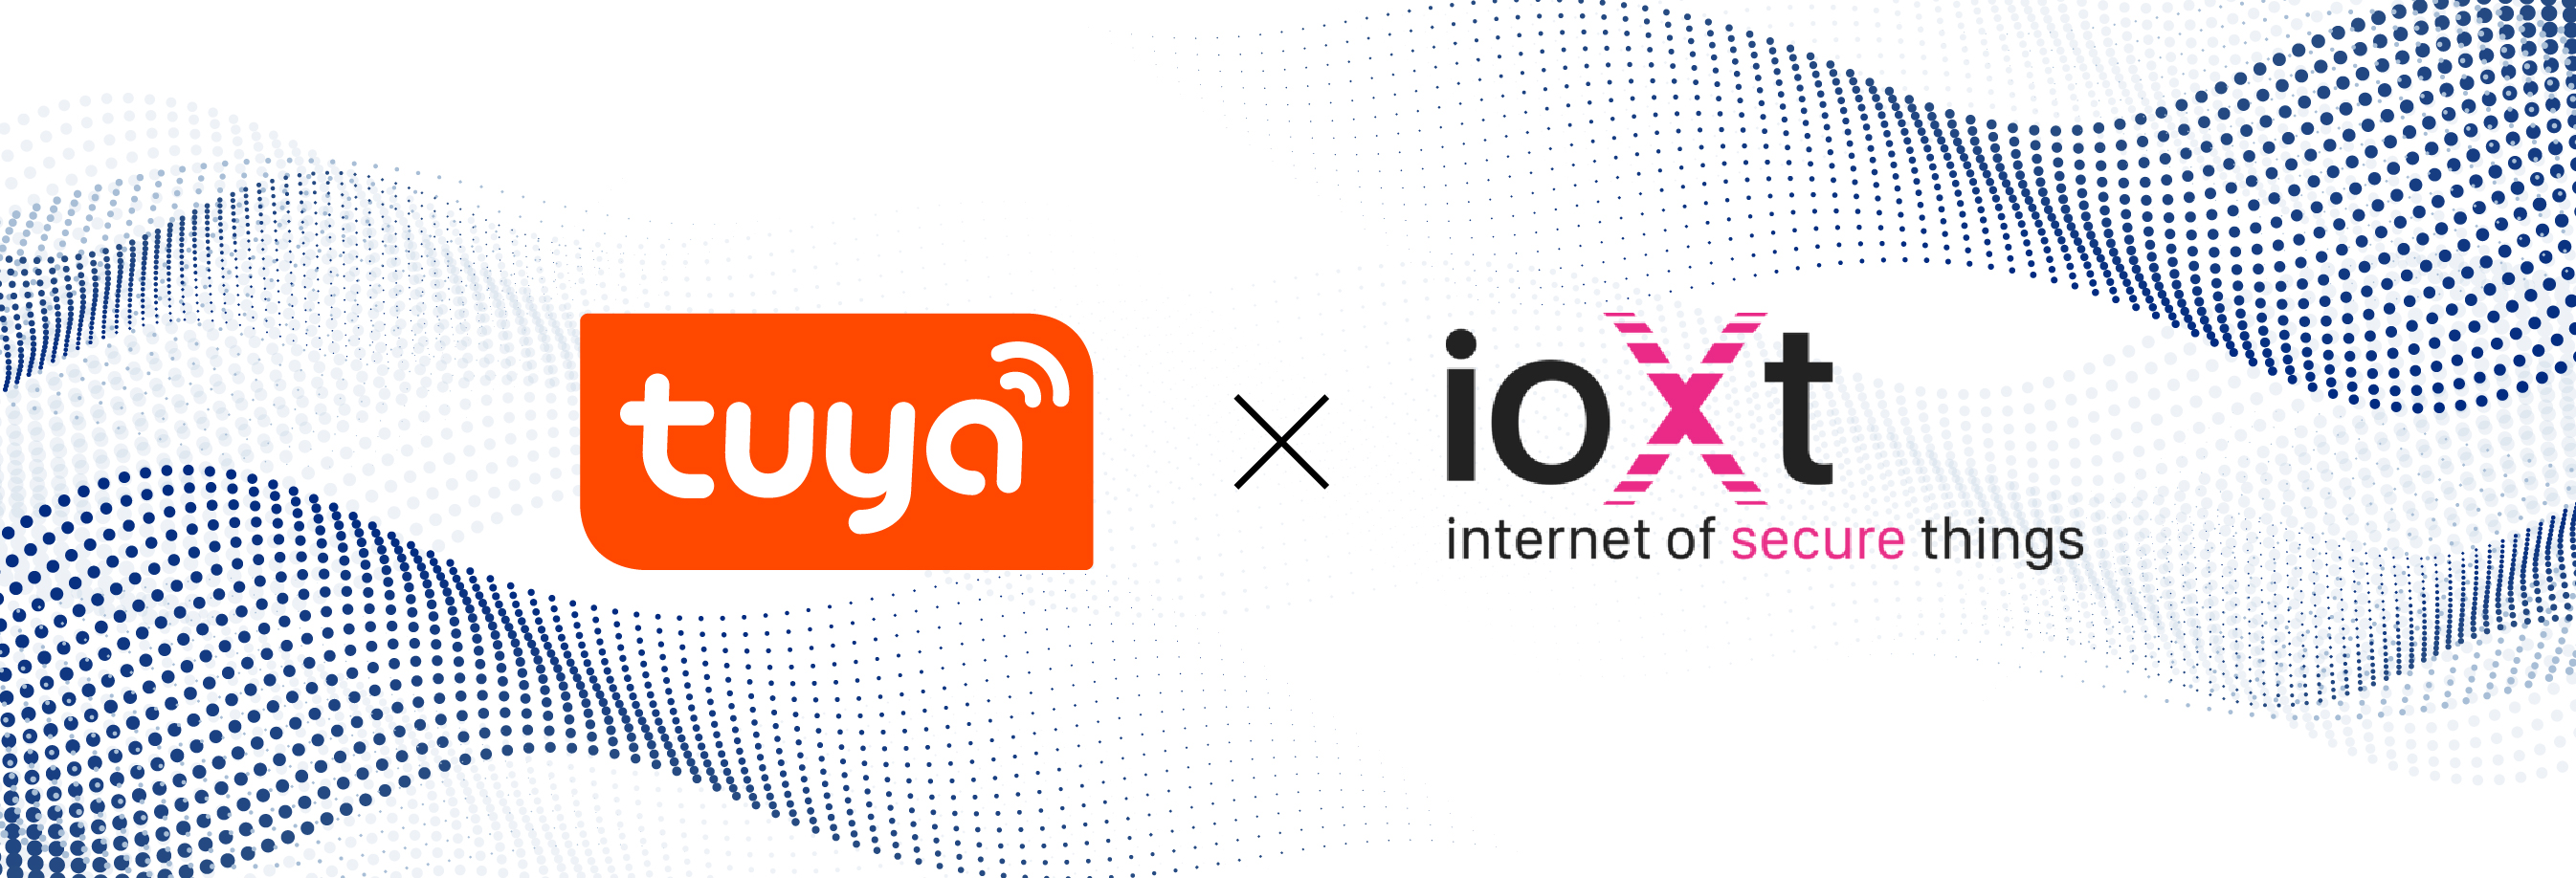 Tuya Smart Joins the ioXt Alliance and Continues to Promote the Security of IoT Devices